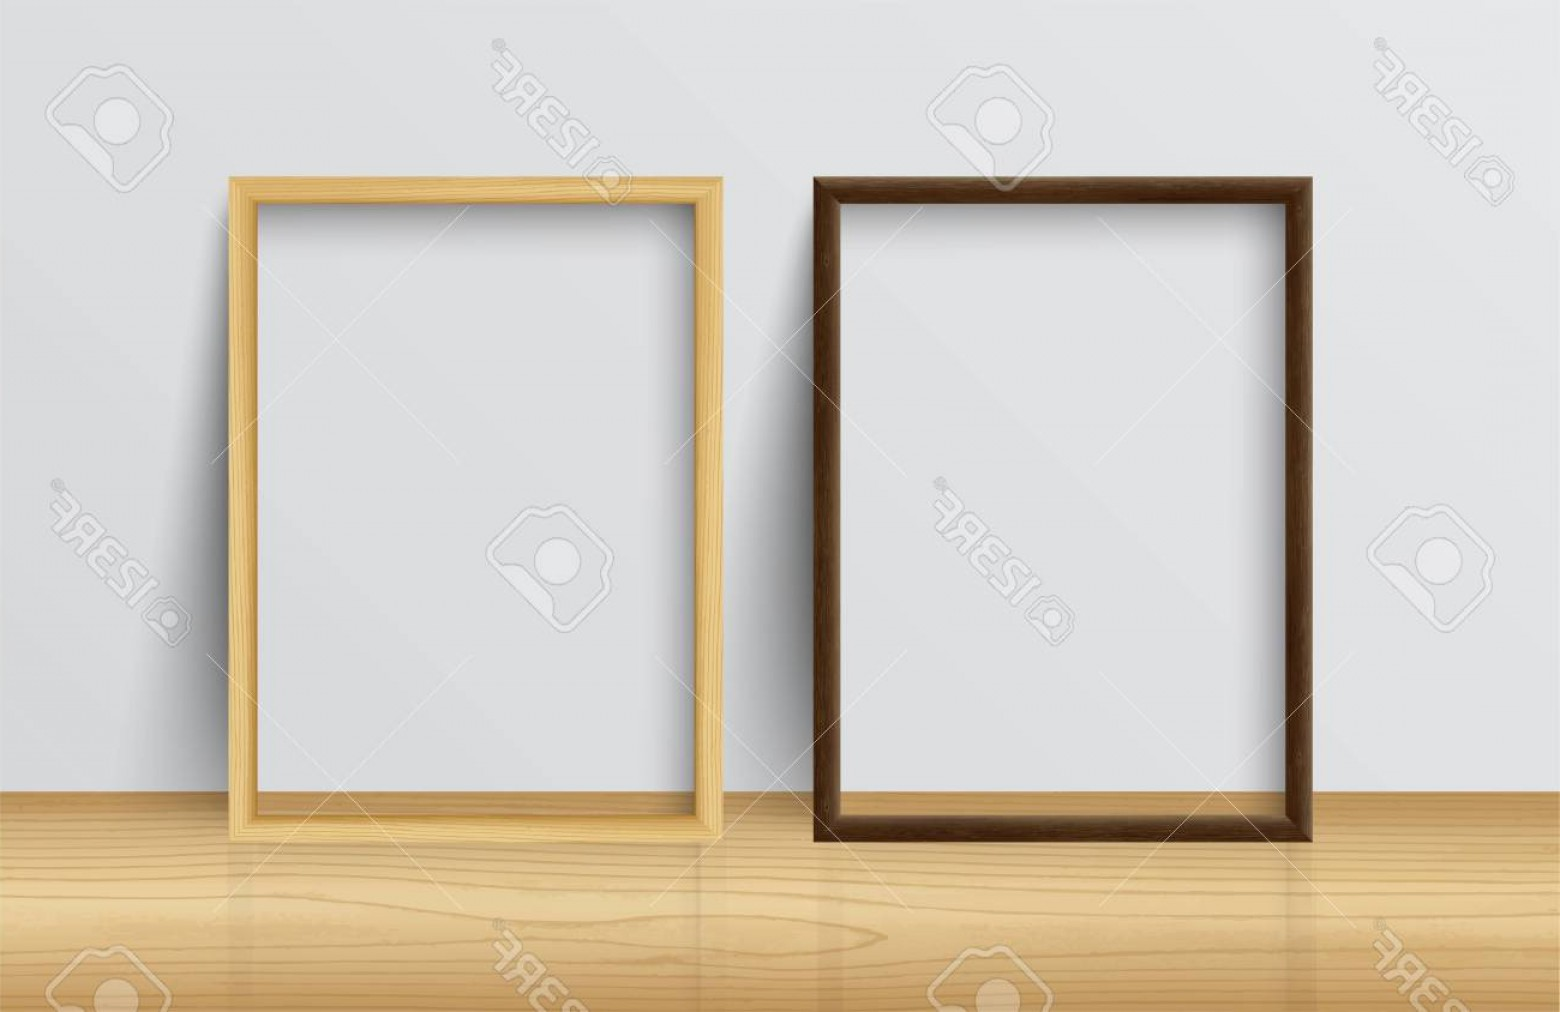 Vector Black Wood Floor: Photostock Vector Realistic Square Light Wood And Dark Wood Blank Picture Frame Standing On Light Wood Floor Atwhite W